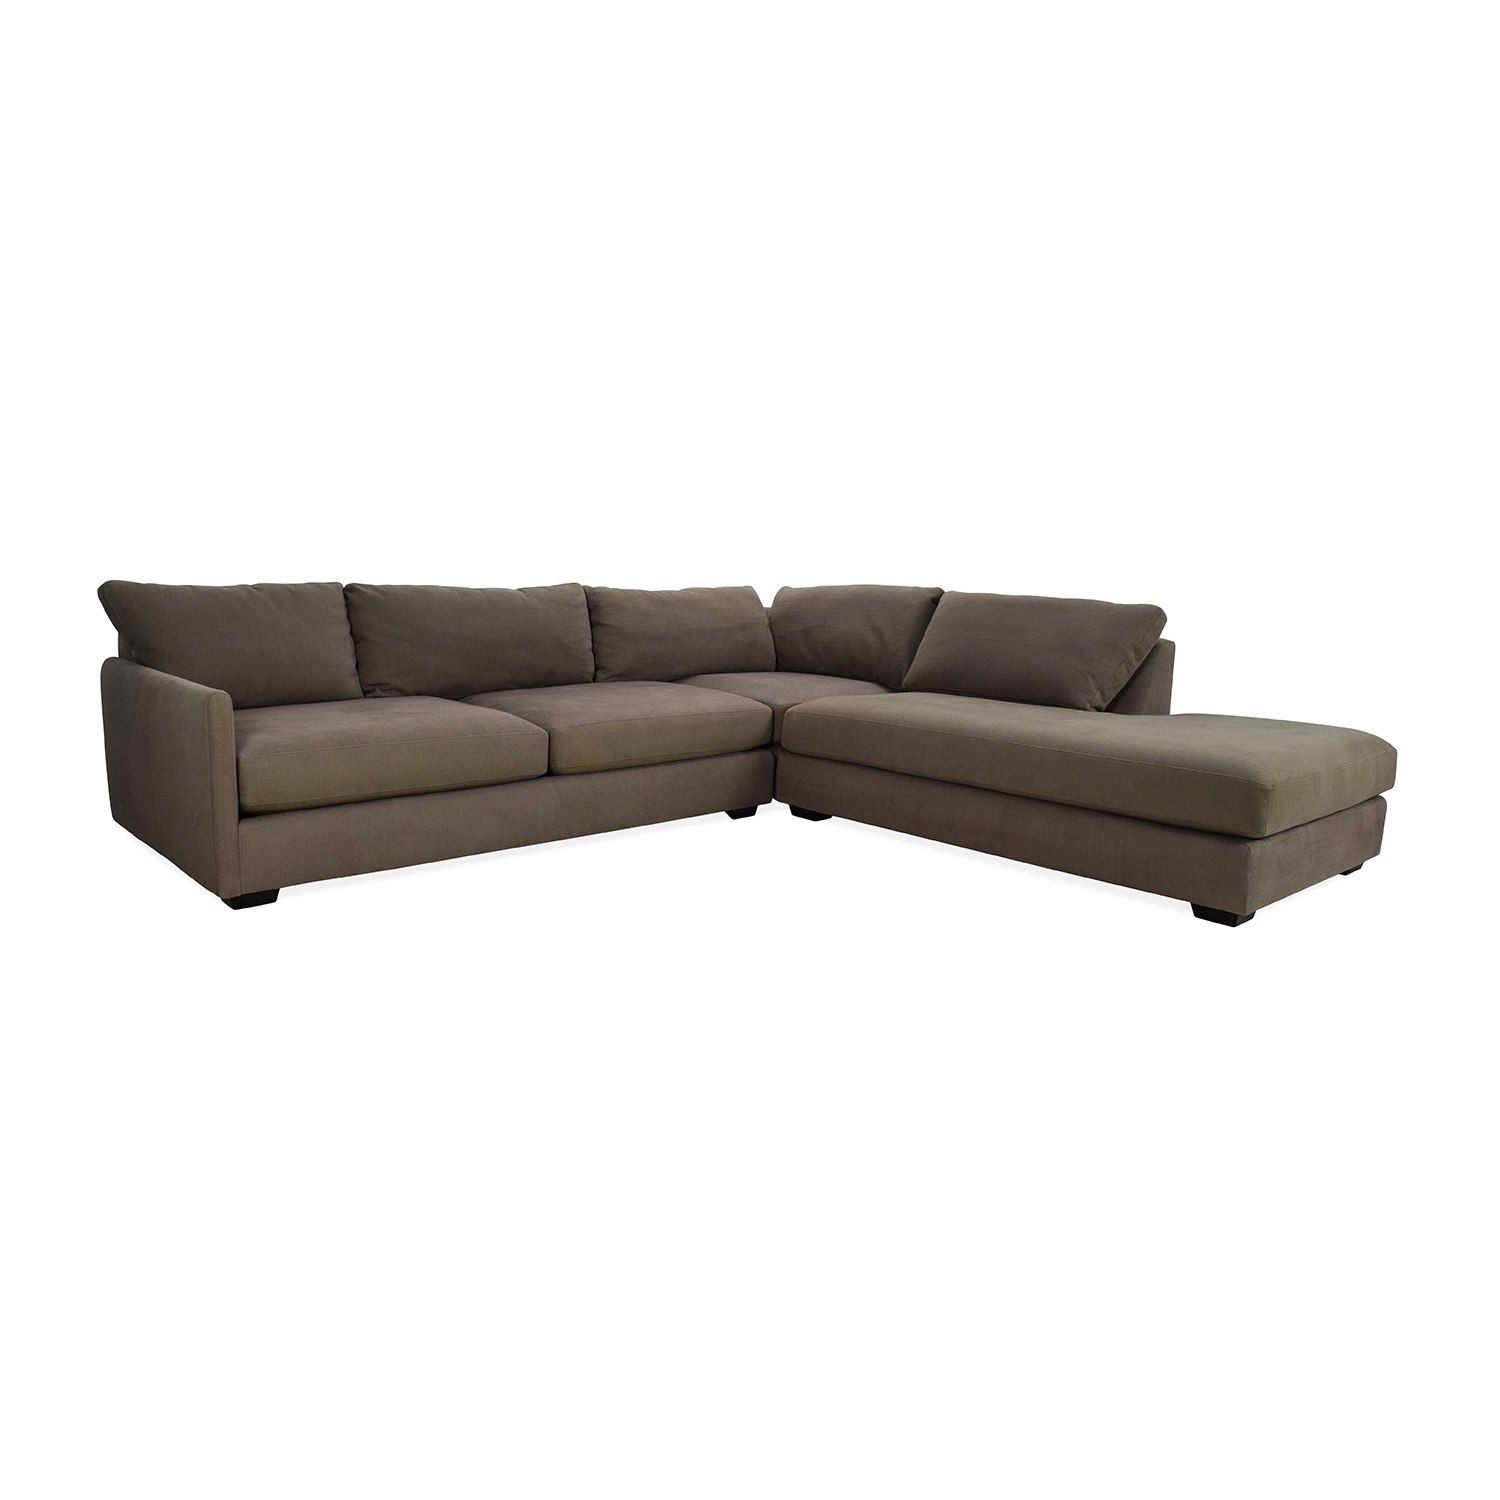 82 Off Crate And Barrel Crate Amp Barrel Domino Sectional